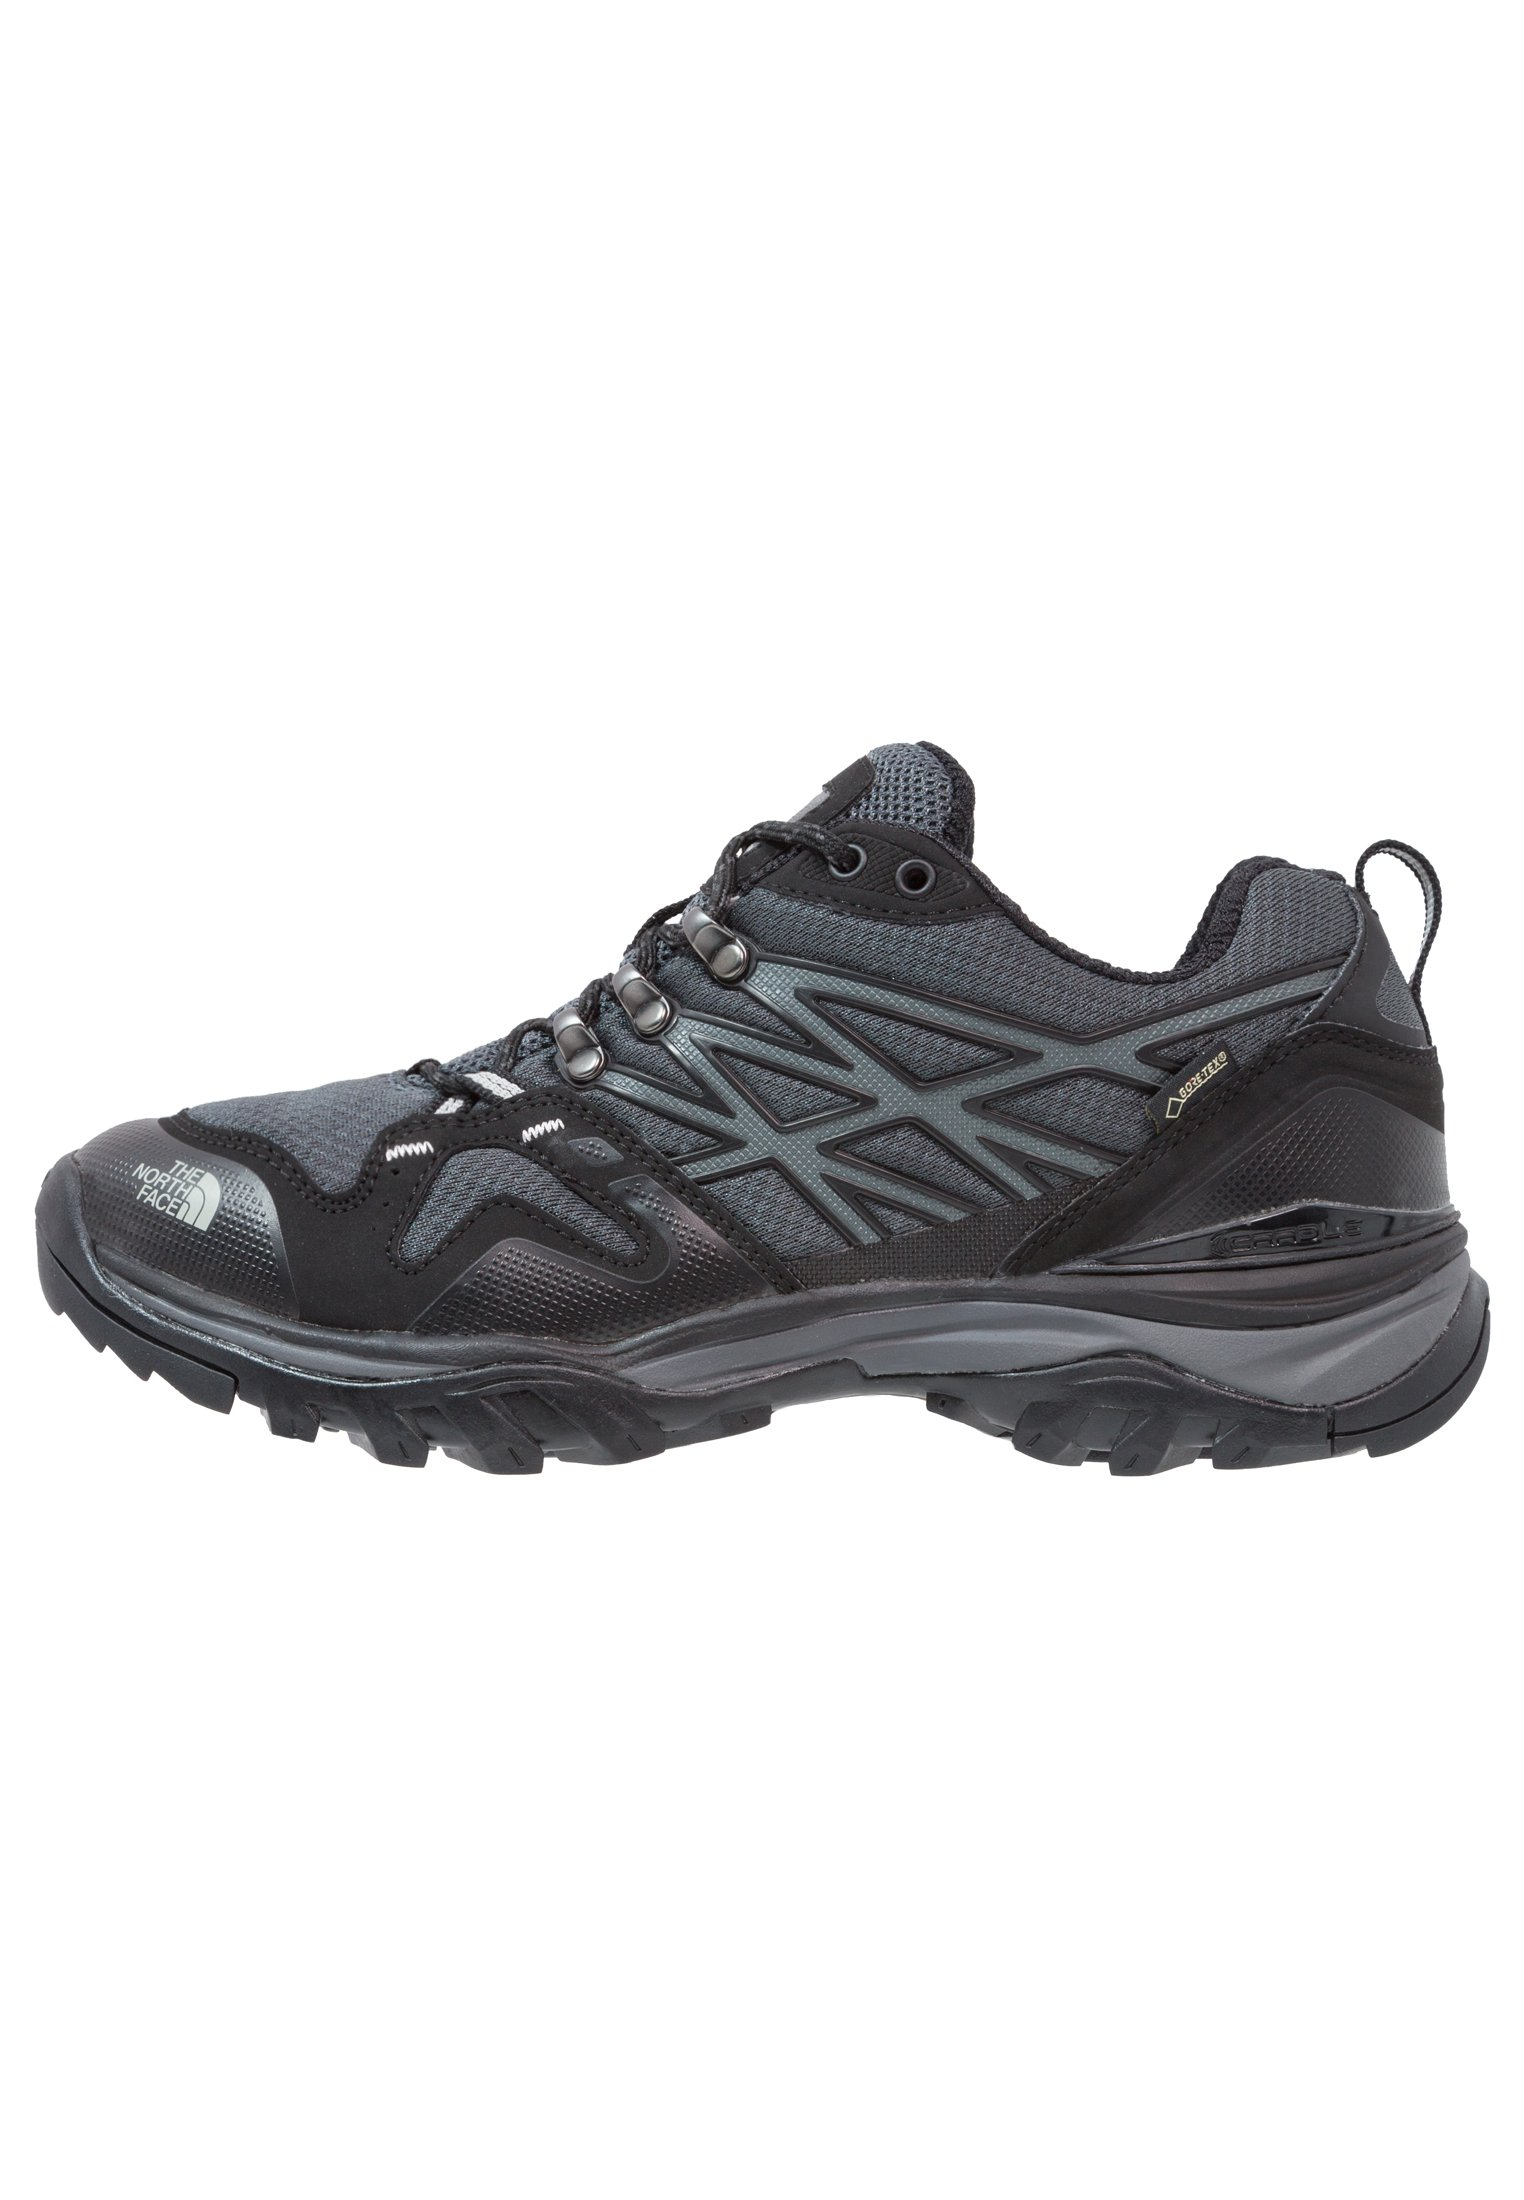 HEDGEHOG FASTPACK GTX Scarpa da hiking blackhigh rise grey